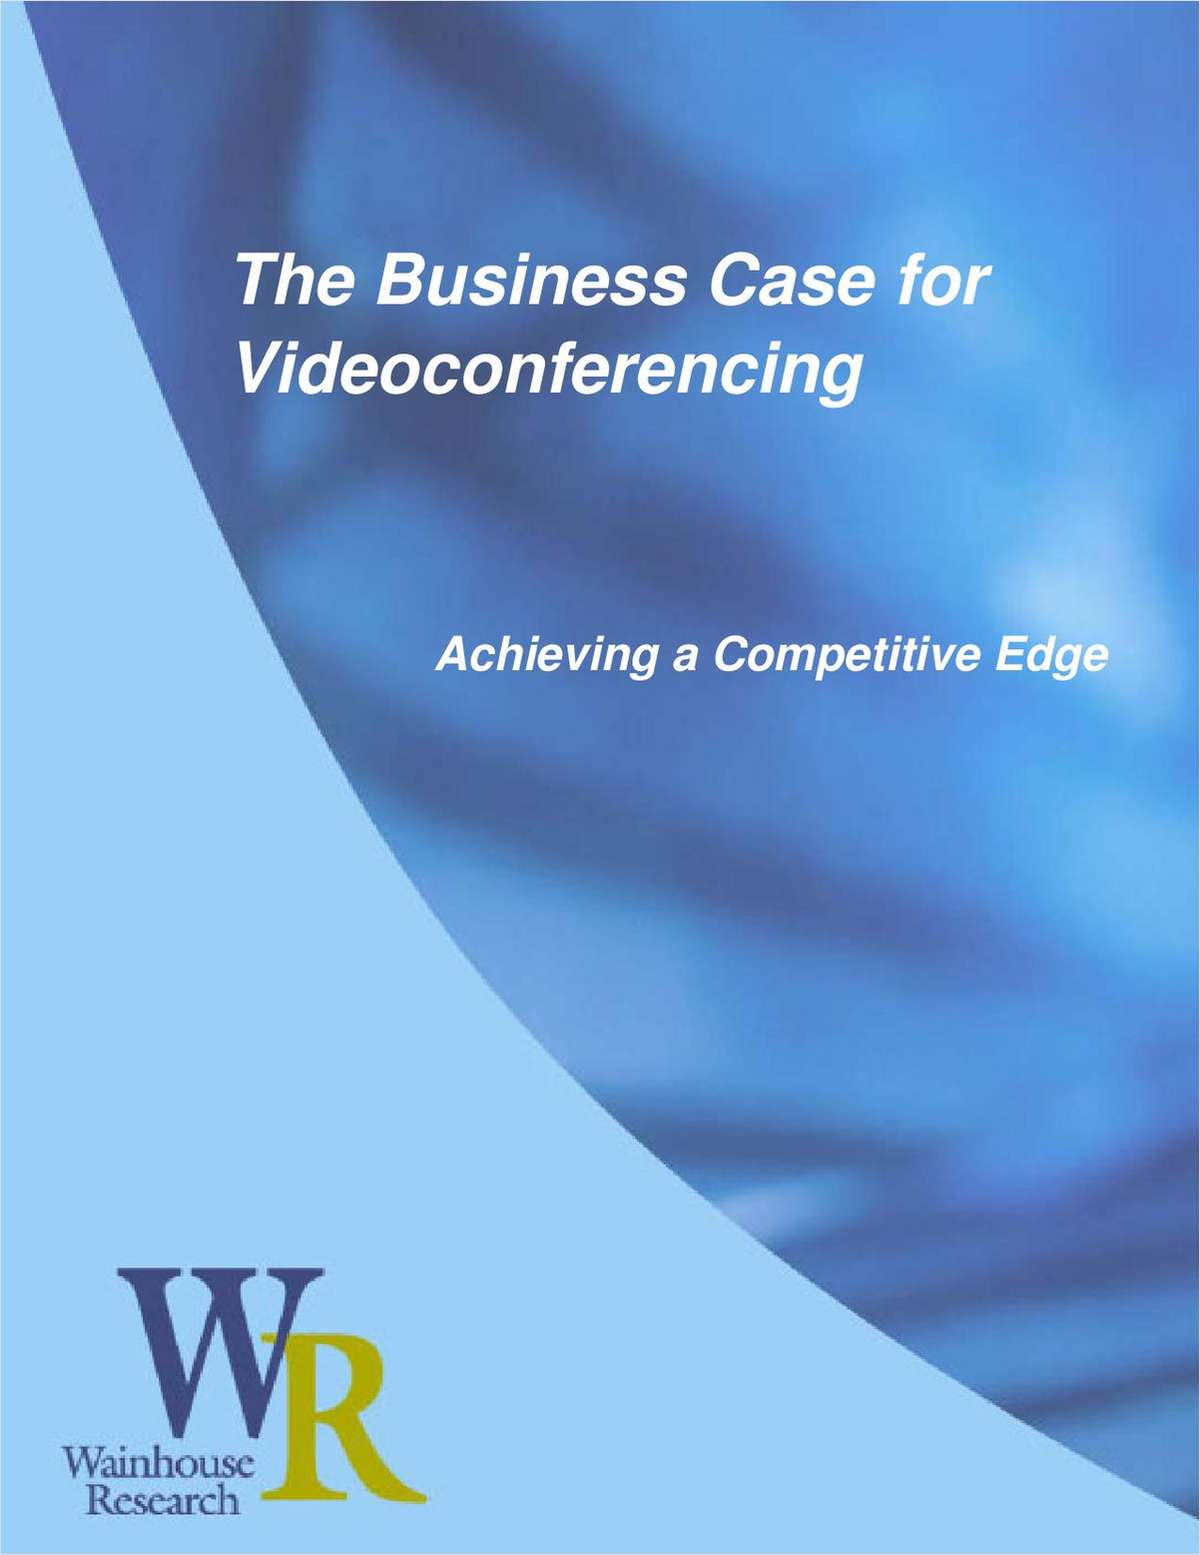 The Business Case for Videoconferencing – Achieving a Competitive Edge